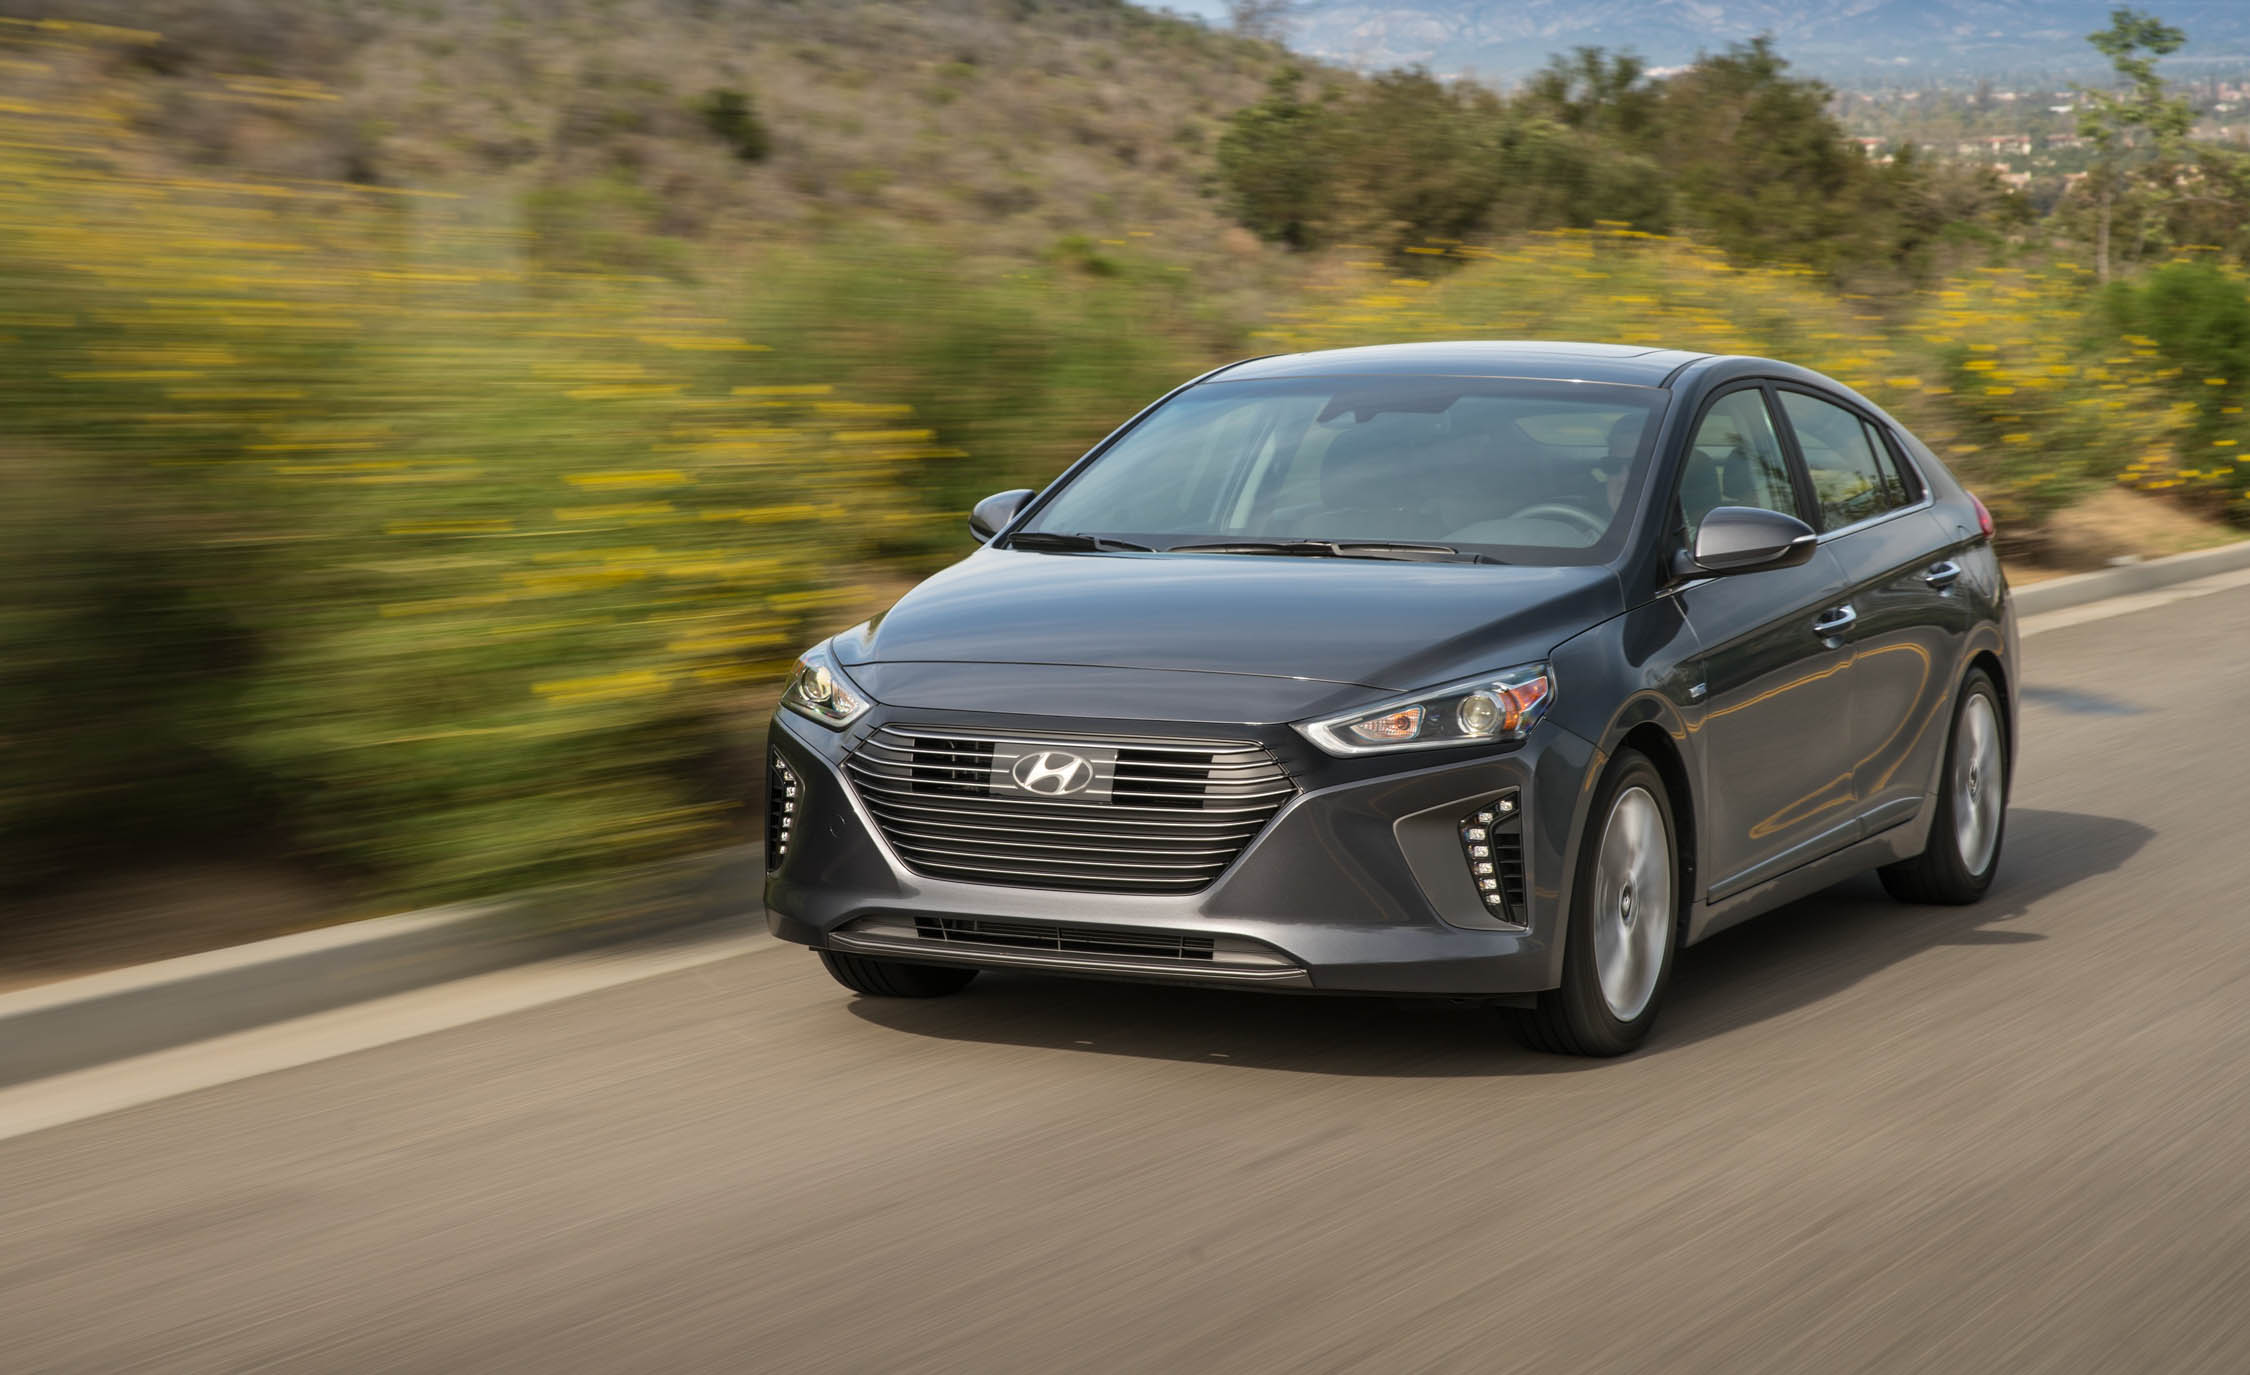 2017 Hyundai Ioniq Hybrid Test Drive (Photo 58 of 67)